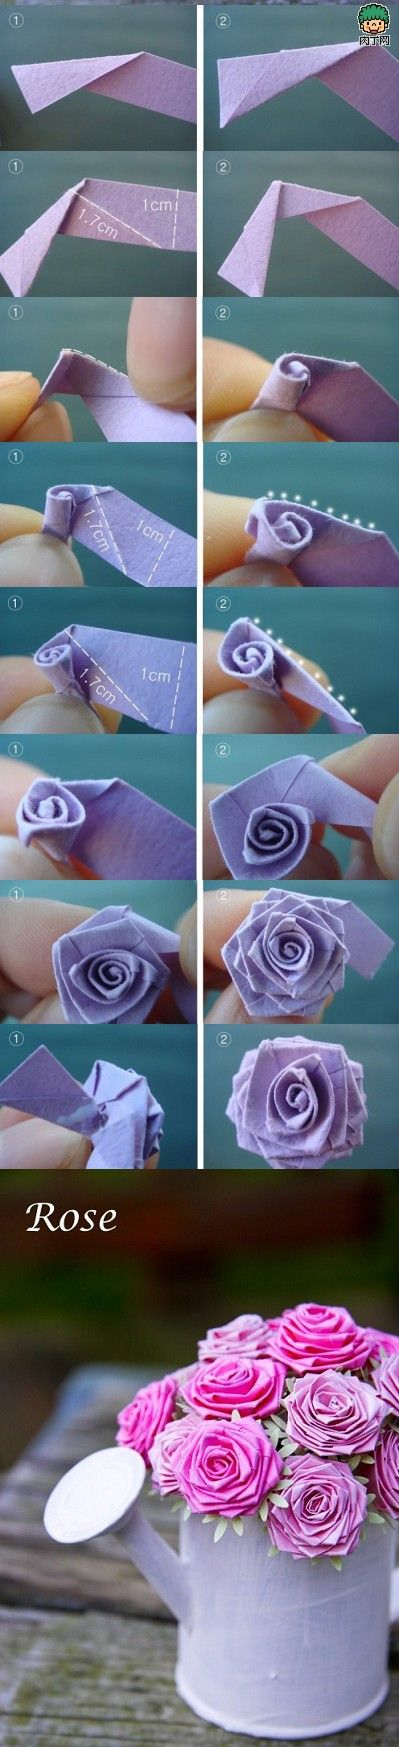 43 best Papierblumen images on Pinterest | Paper flowers, Crafts and ...